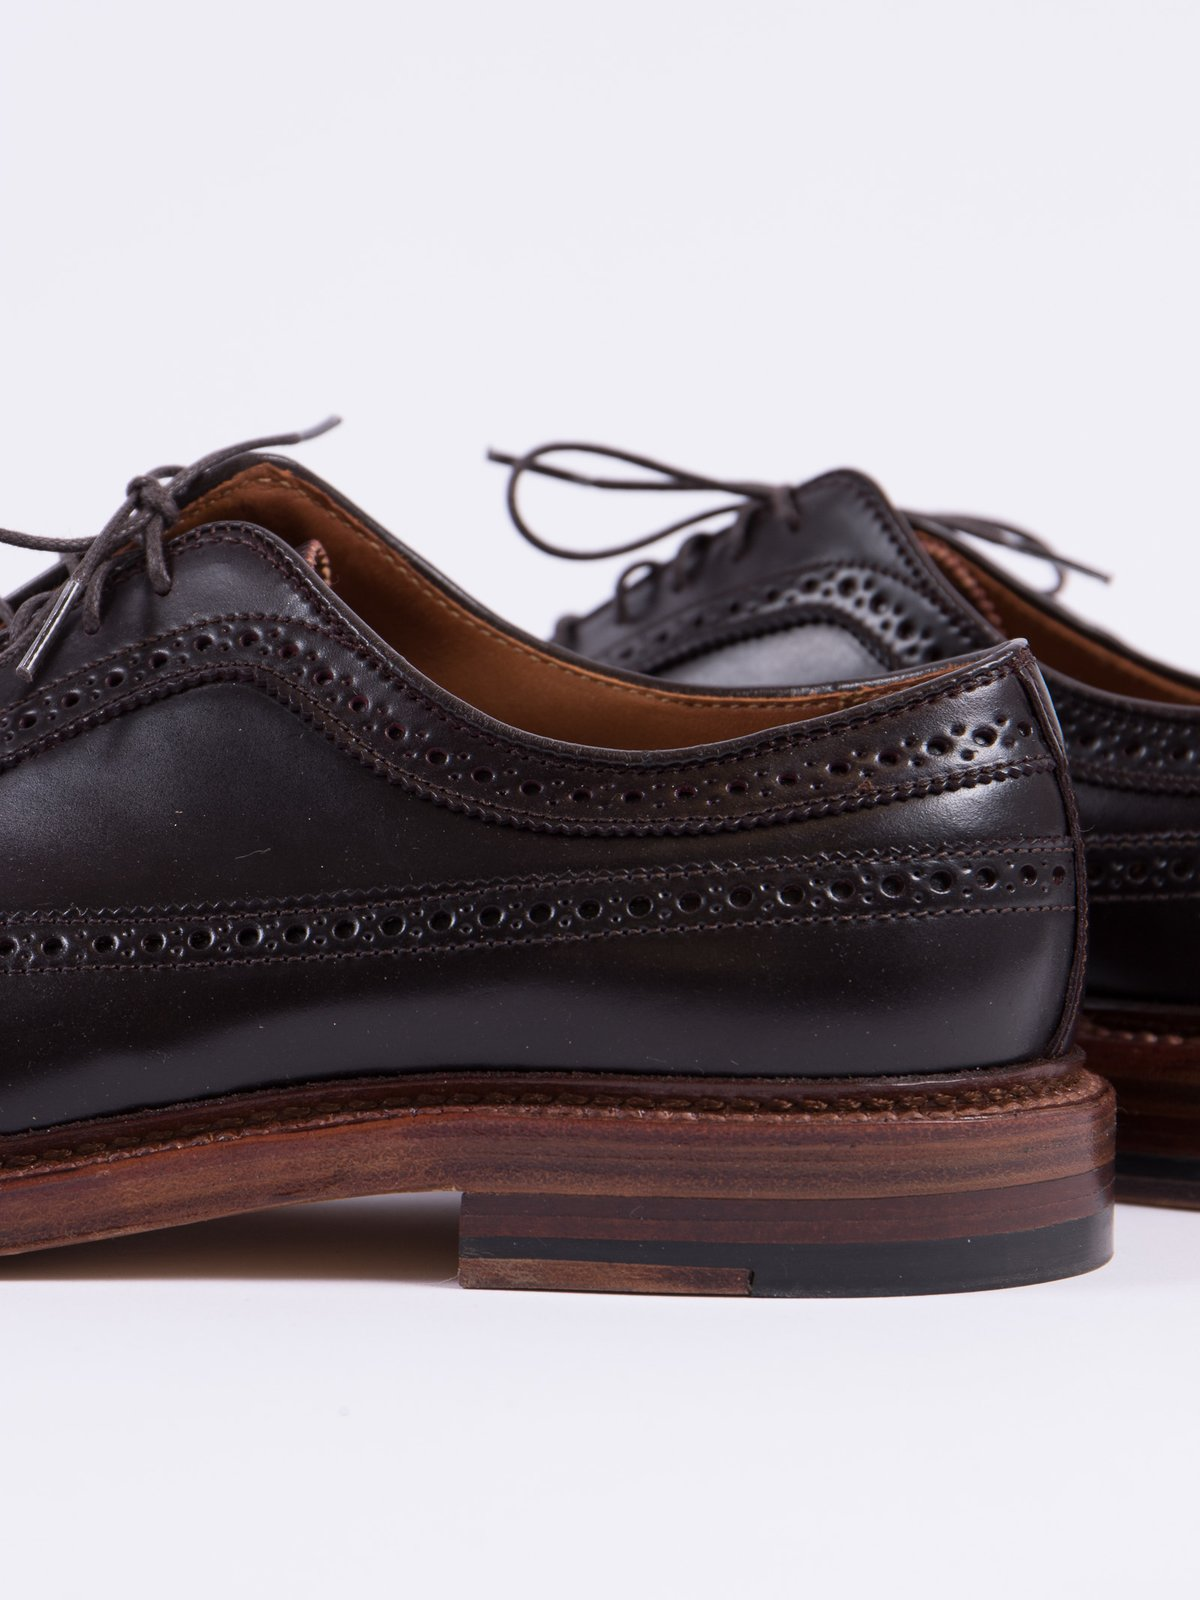 Color 8 Cordovan Long Wing Blucher - Image 4